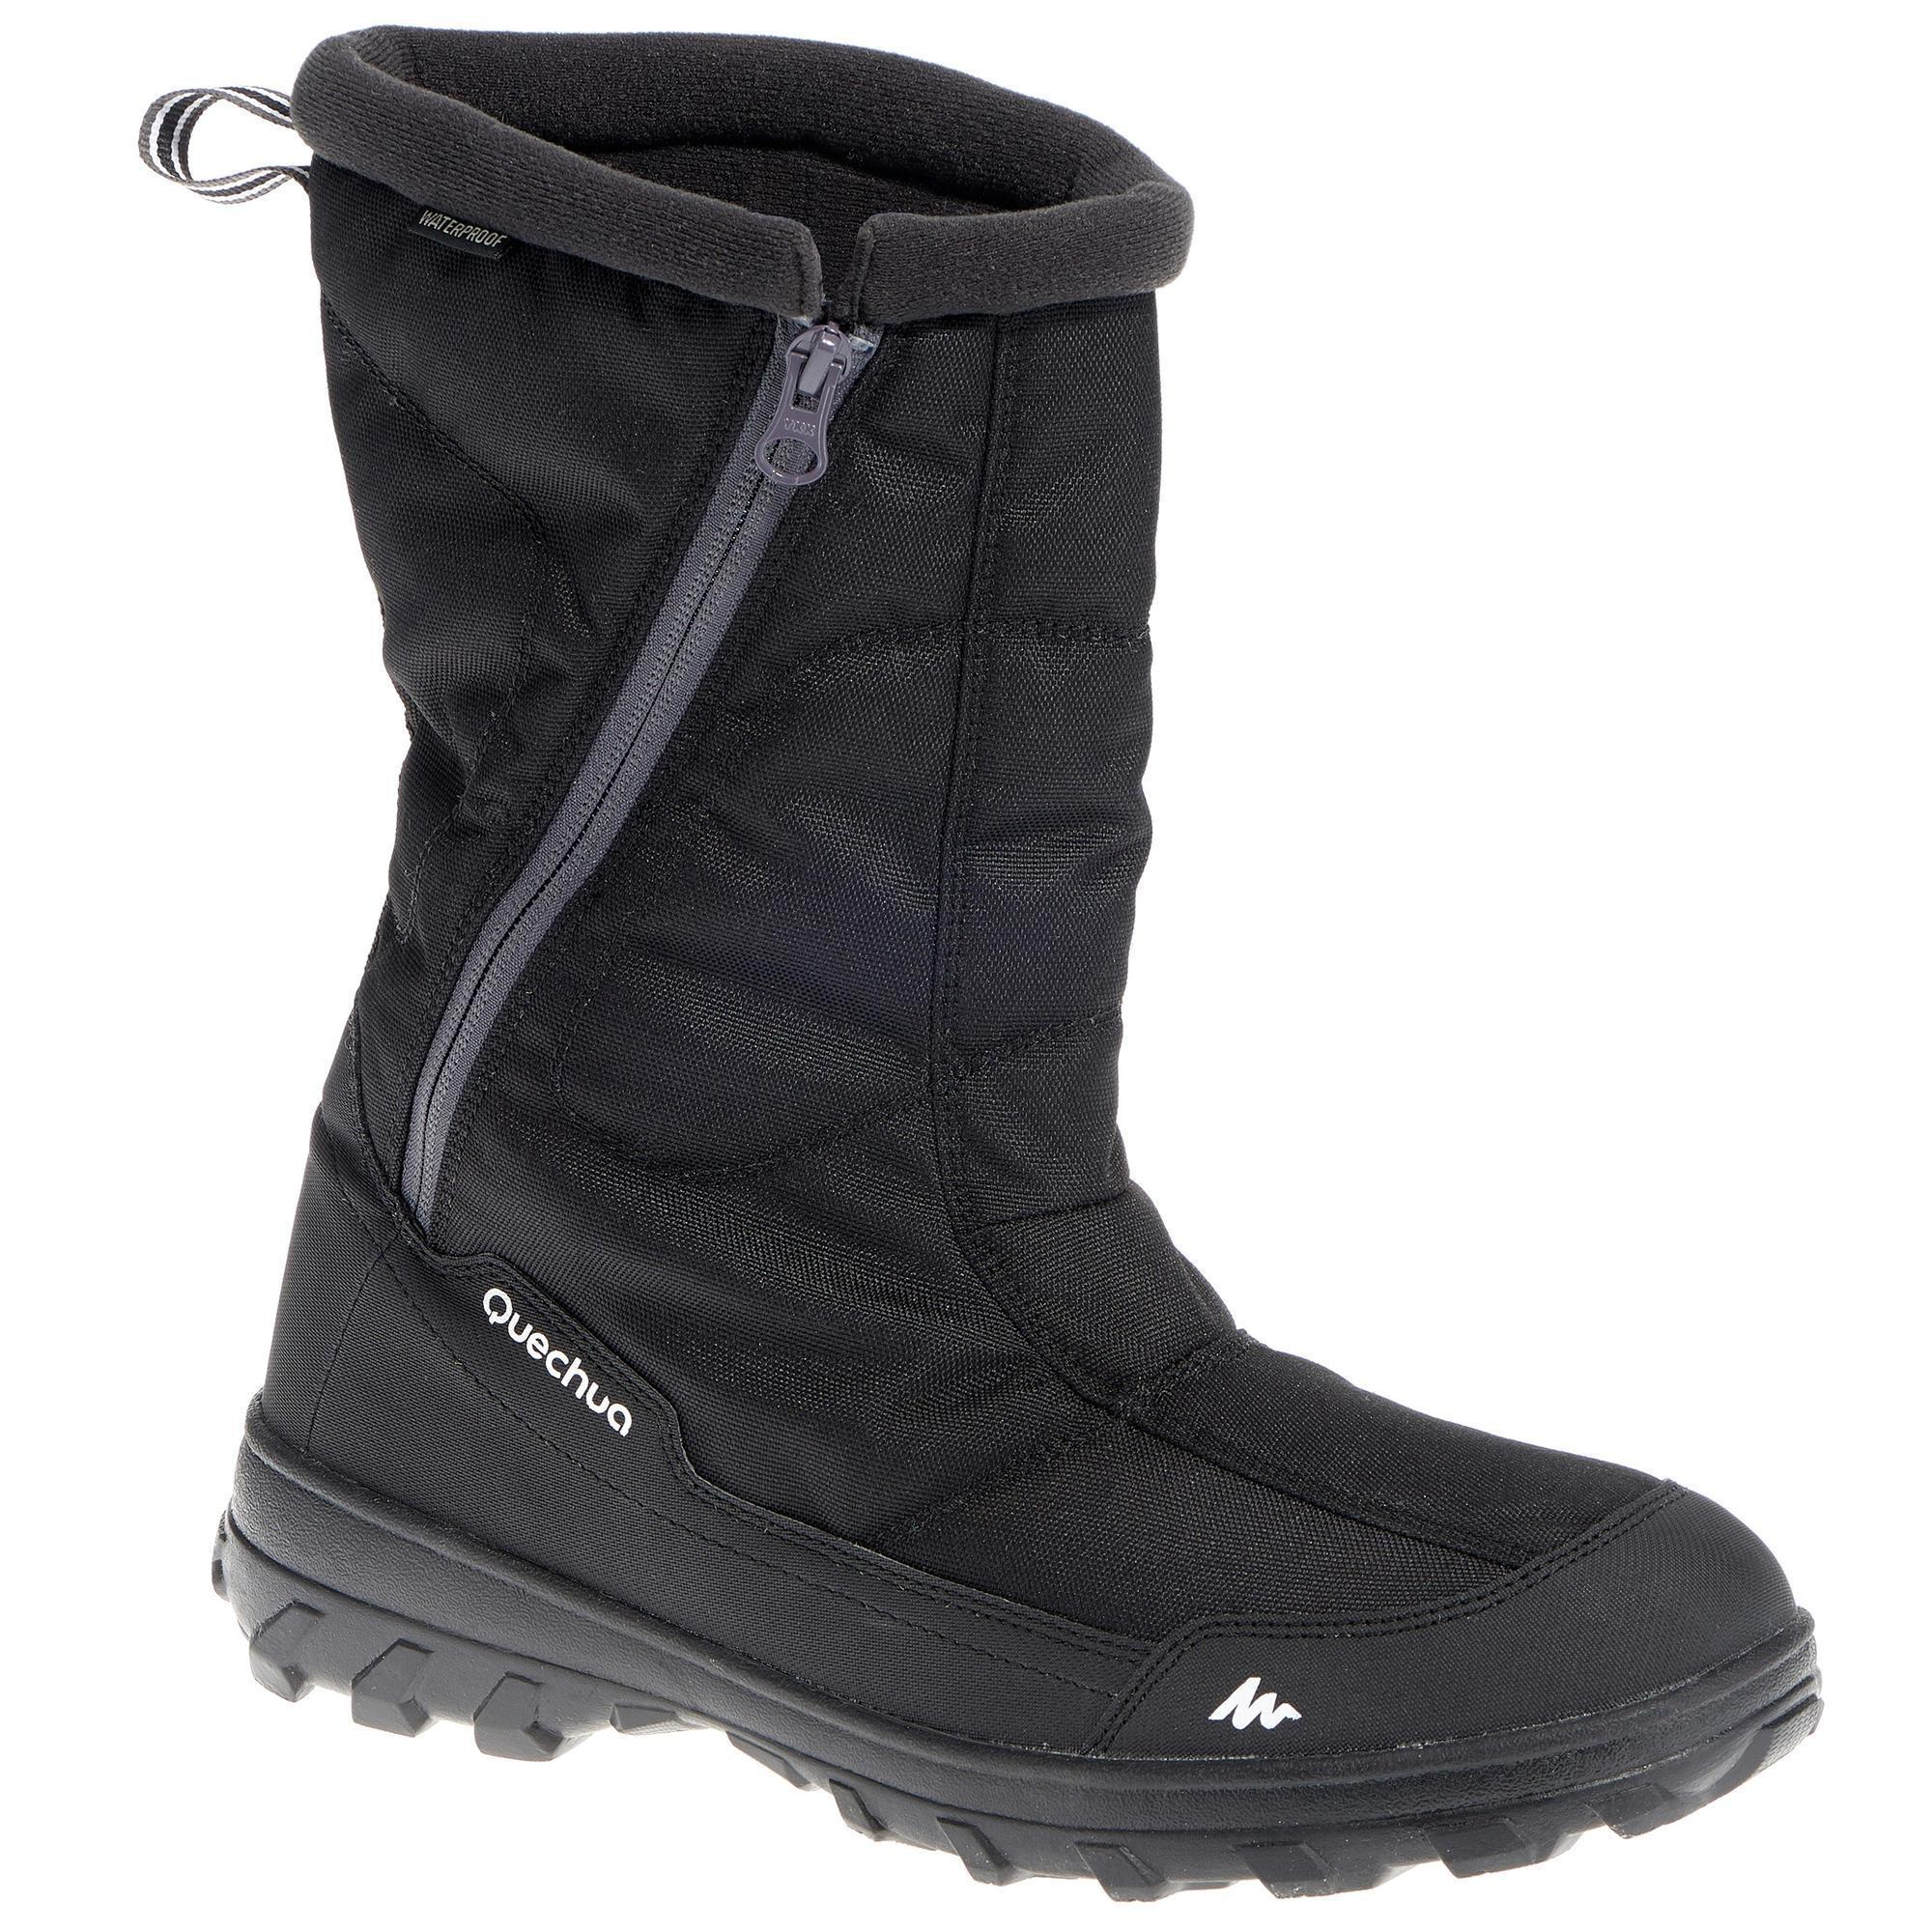 SH500 Men's Warm and Waterproof Snow Hiking Boots